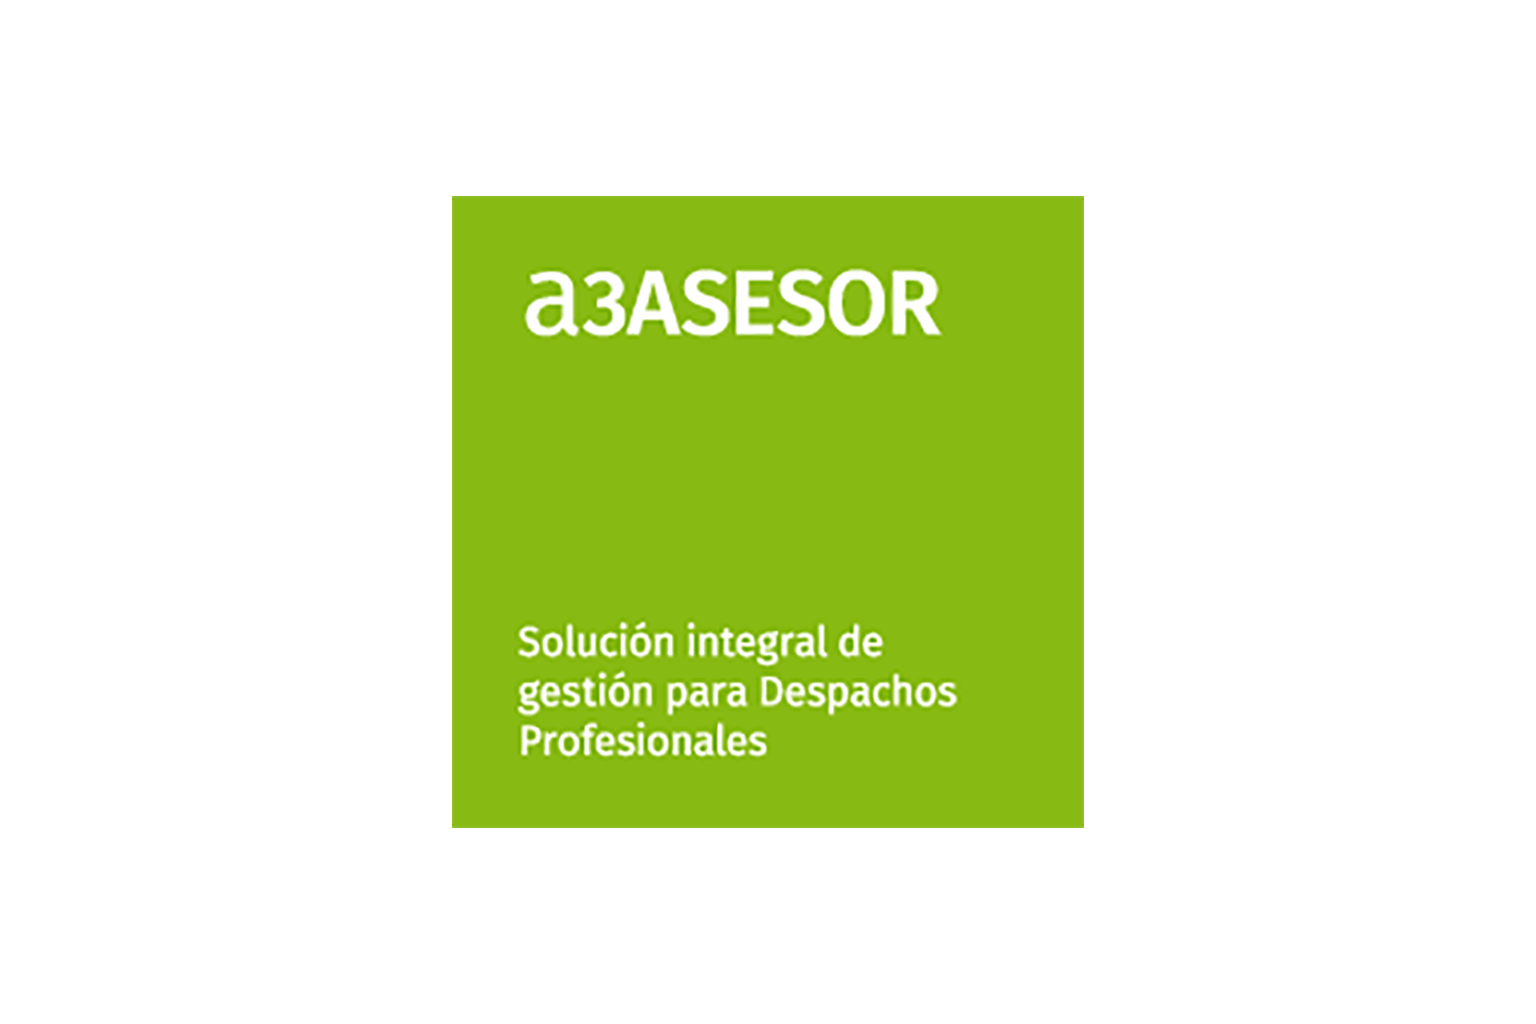 a3ASESOR